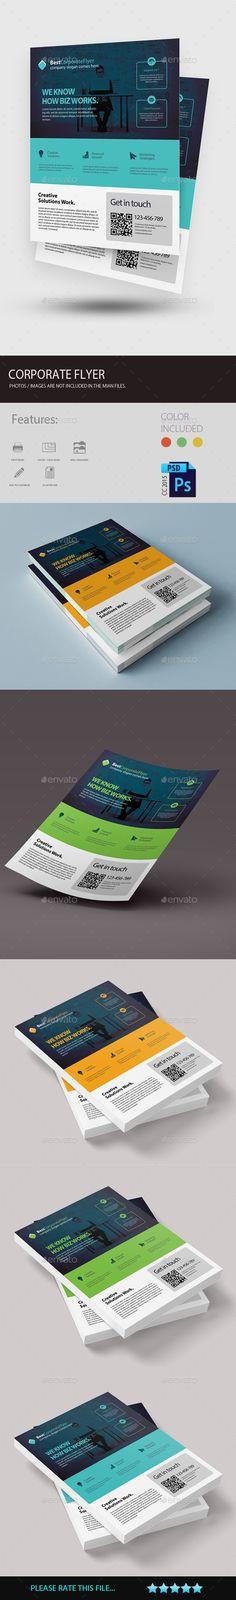 Corporate Flyer by amirgraphix EASY TO EDIT Clean and well organized flyer template. You can confidently get best results in the very less time.Features •Print R